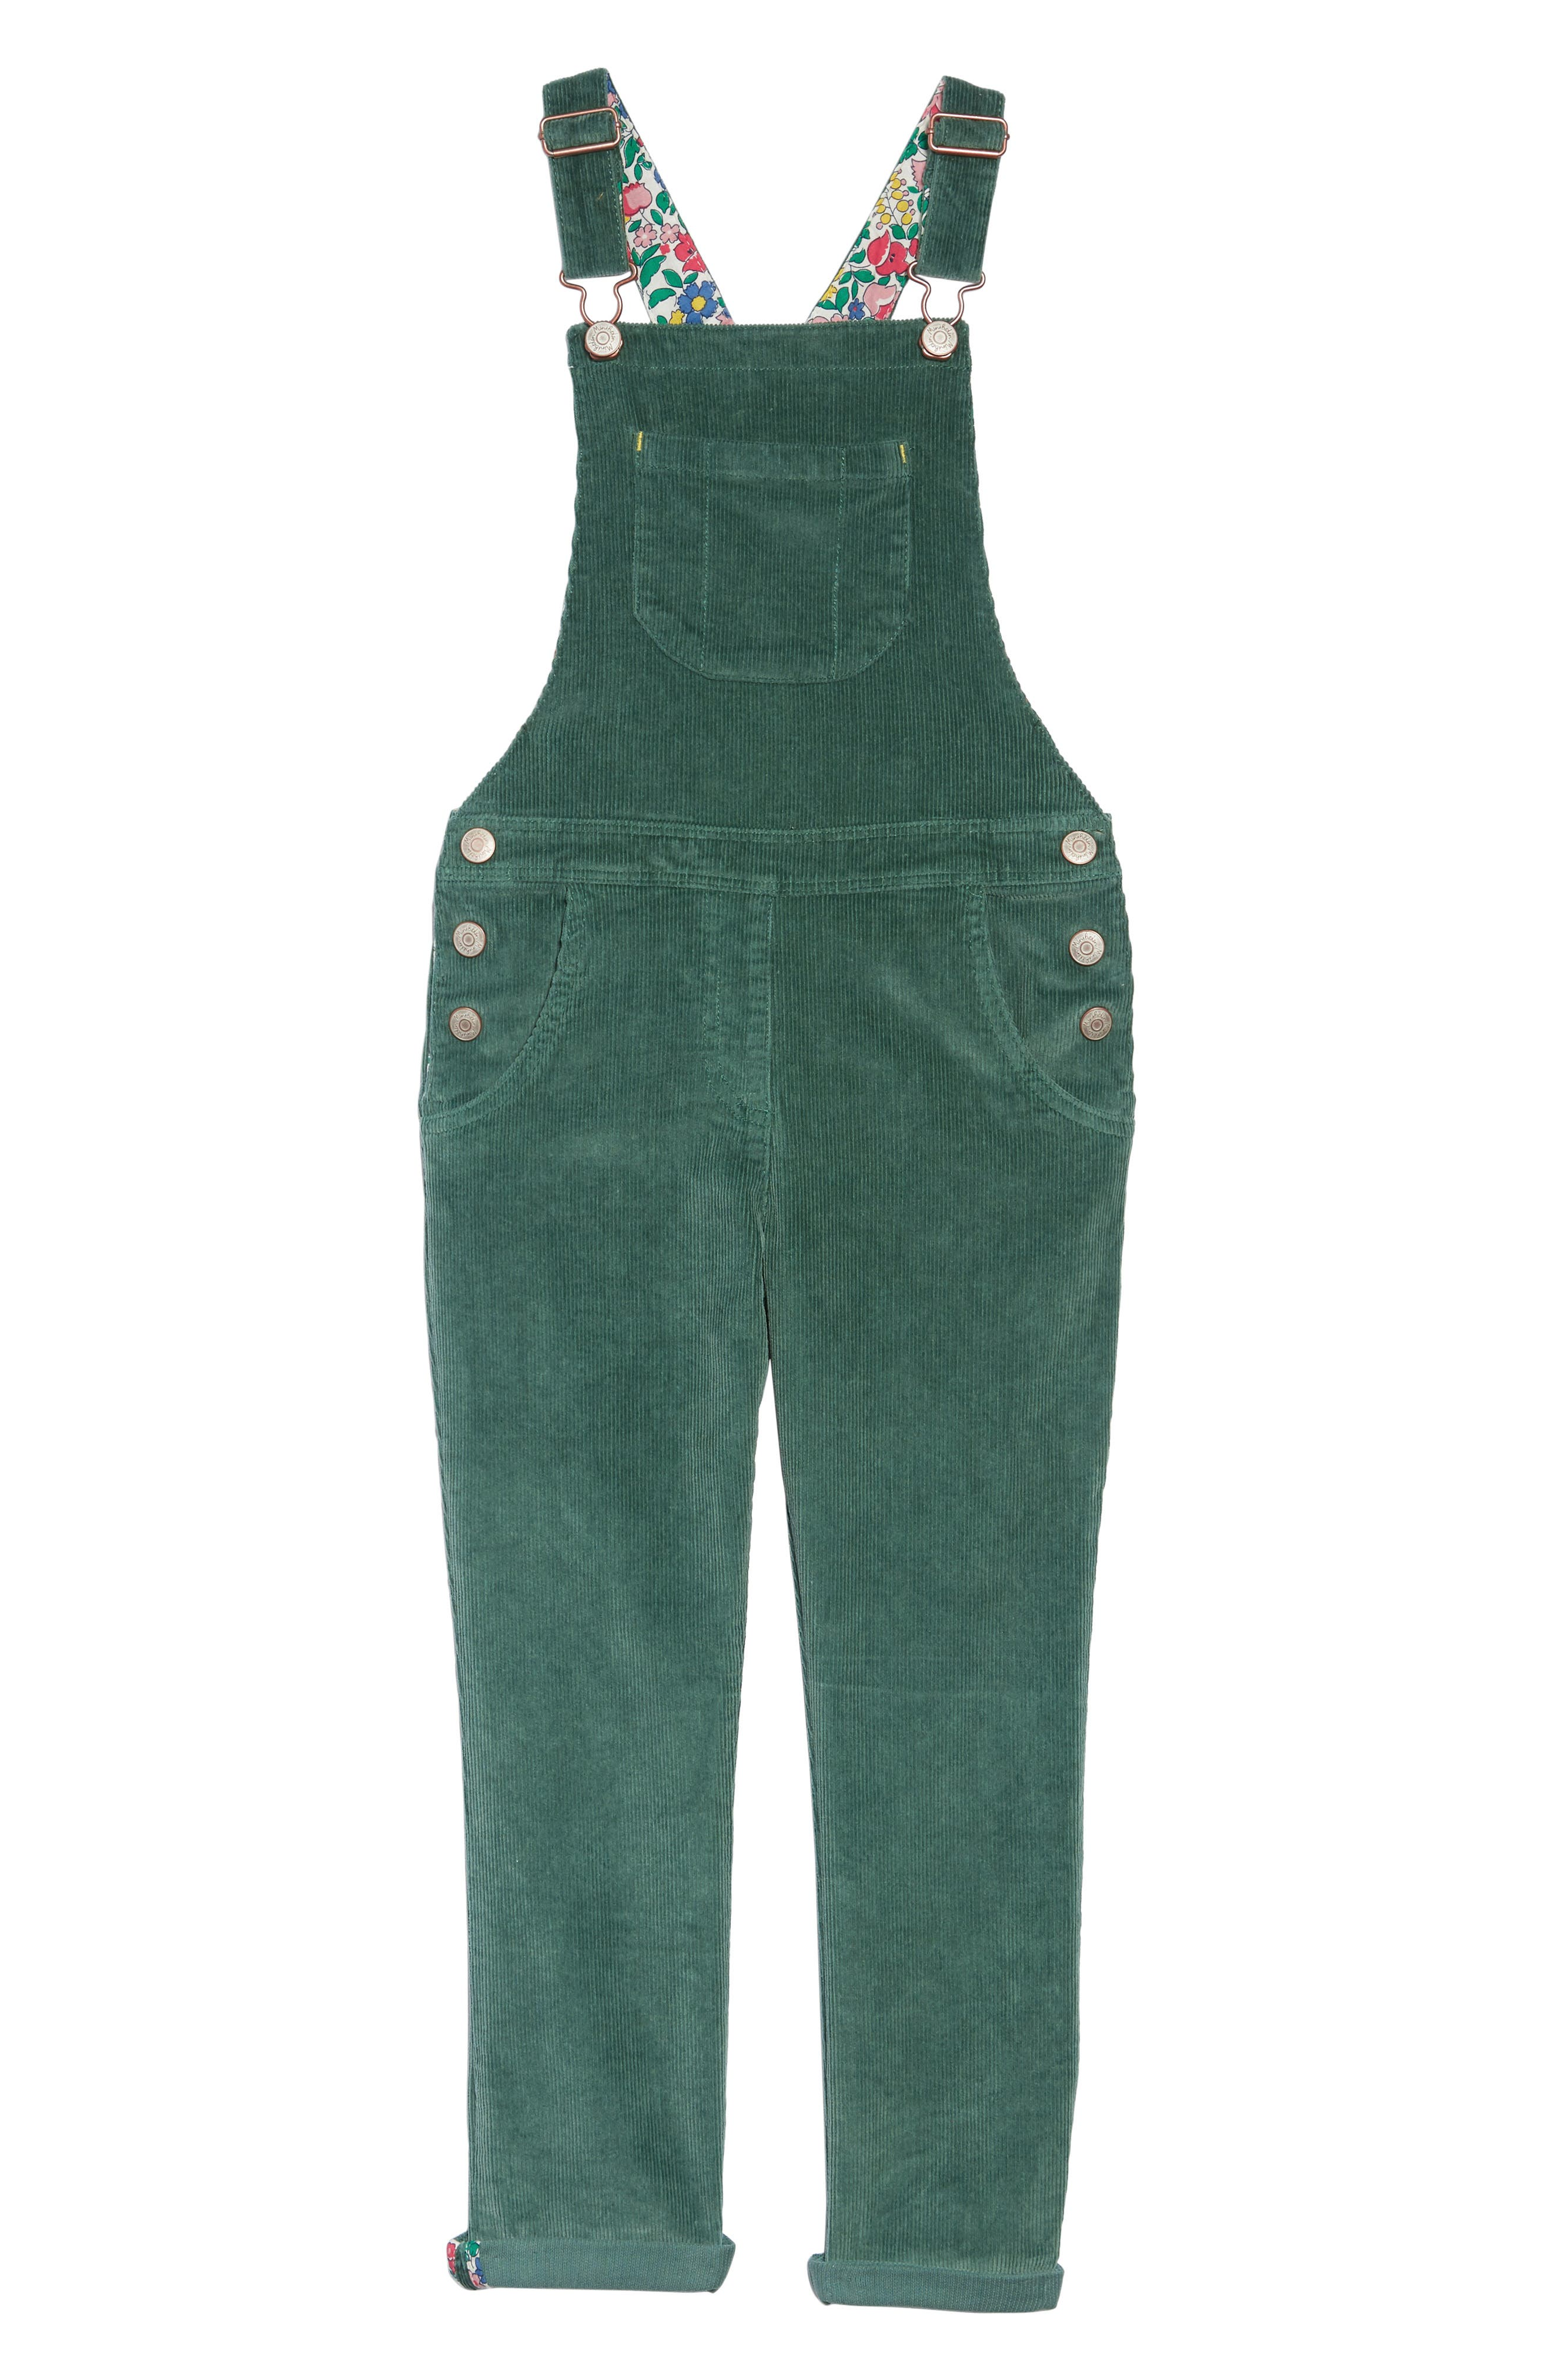 Embroidered Dungaree Overalls,                             Main thumbnail 1, color,                             WILLOW GREEN